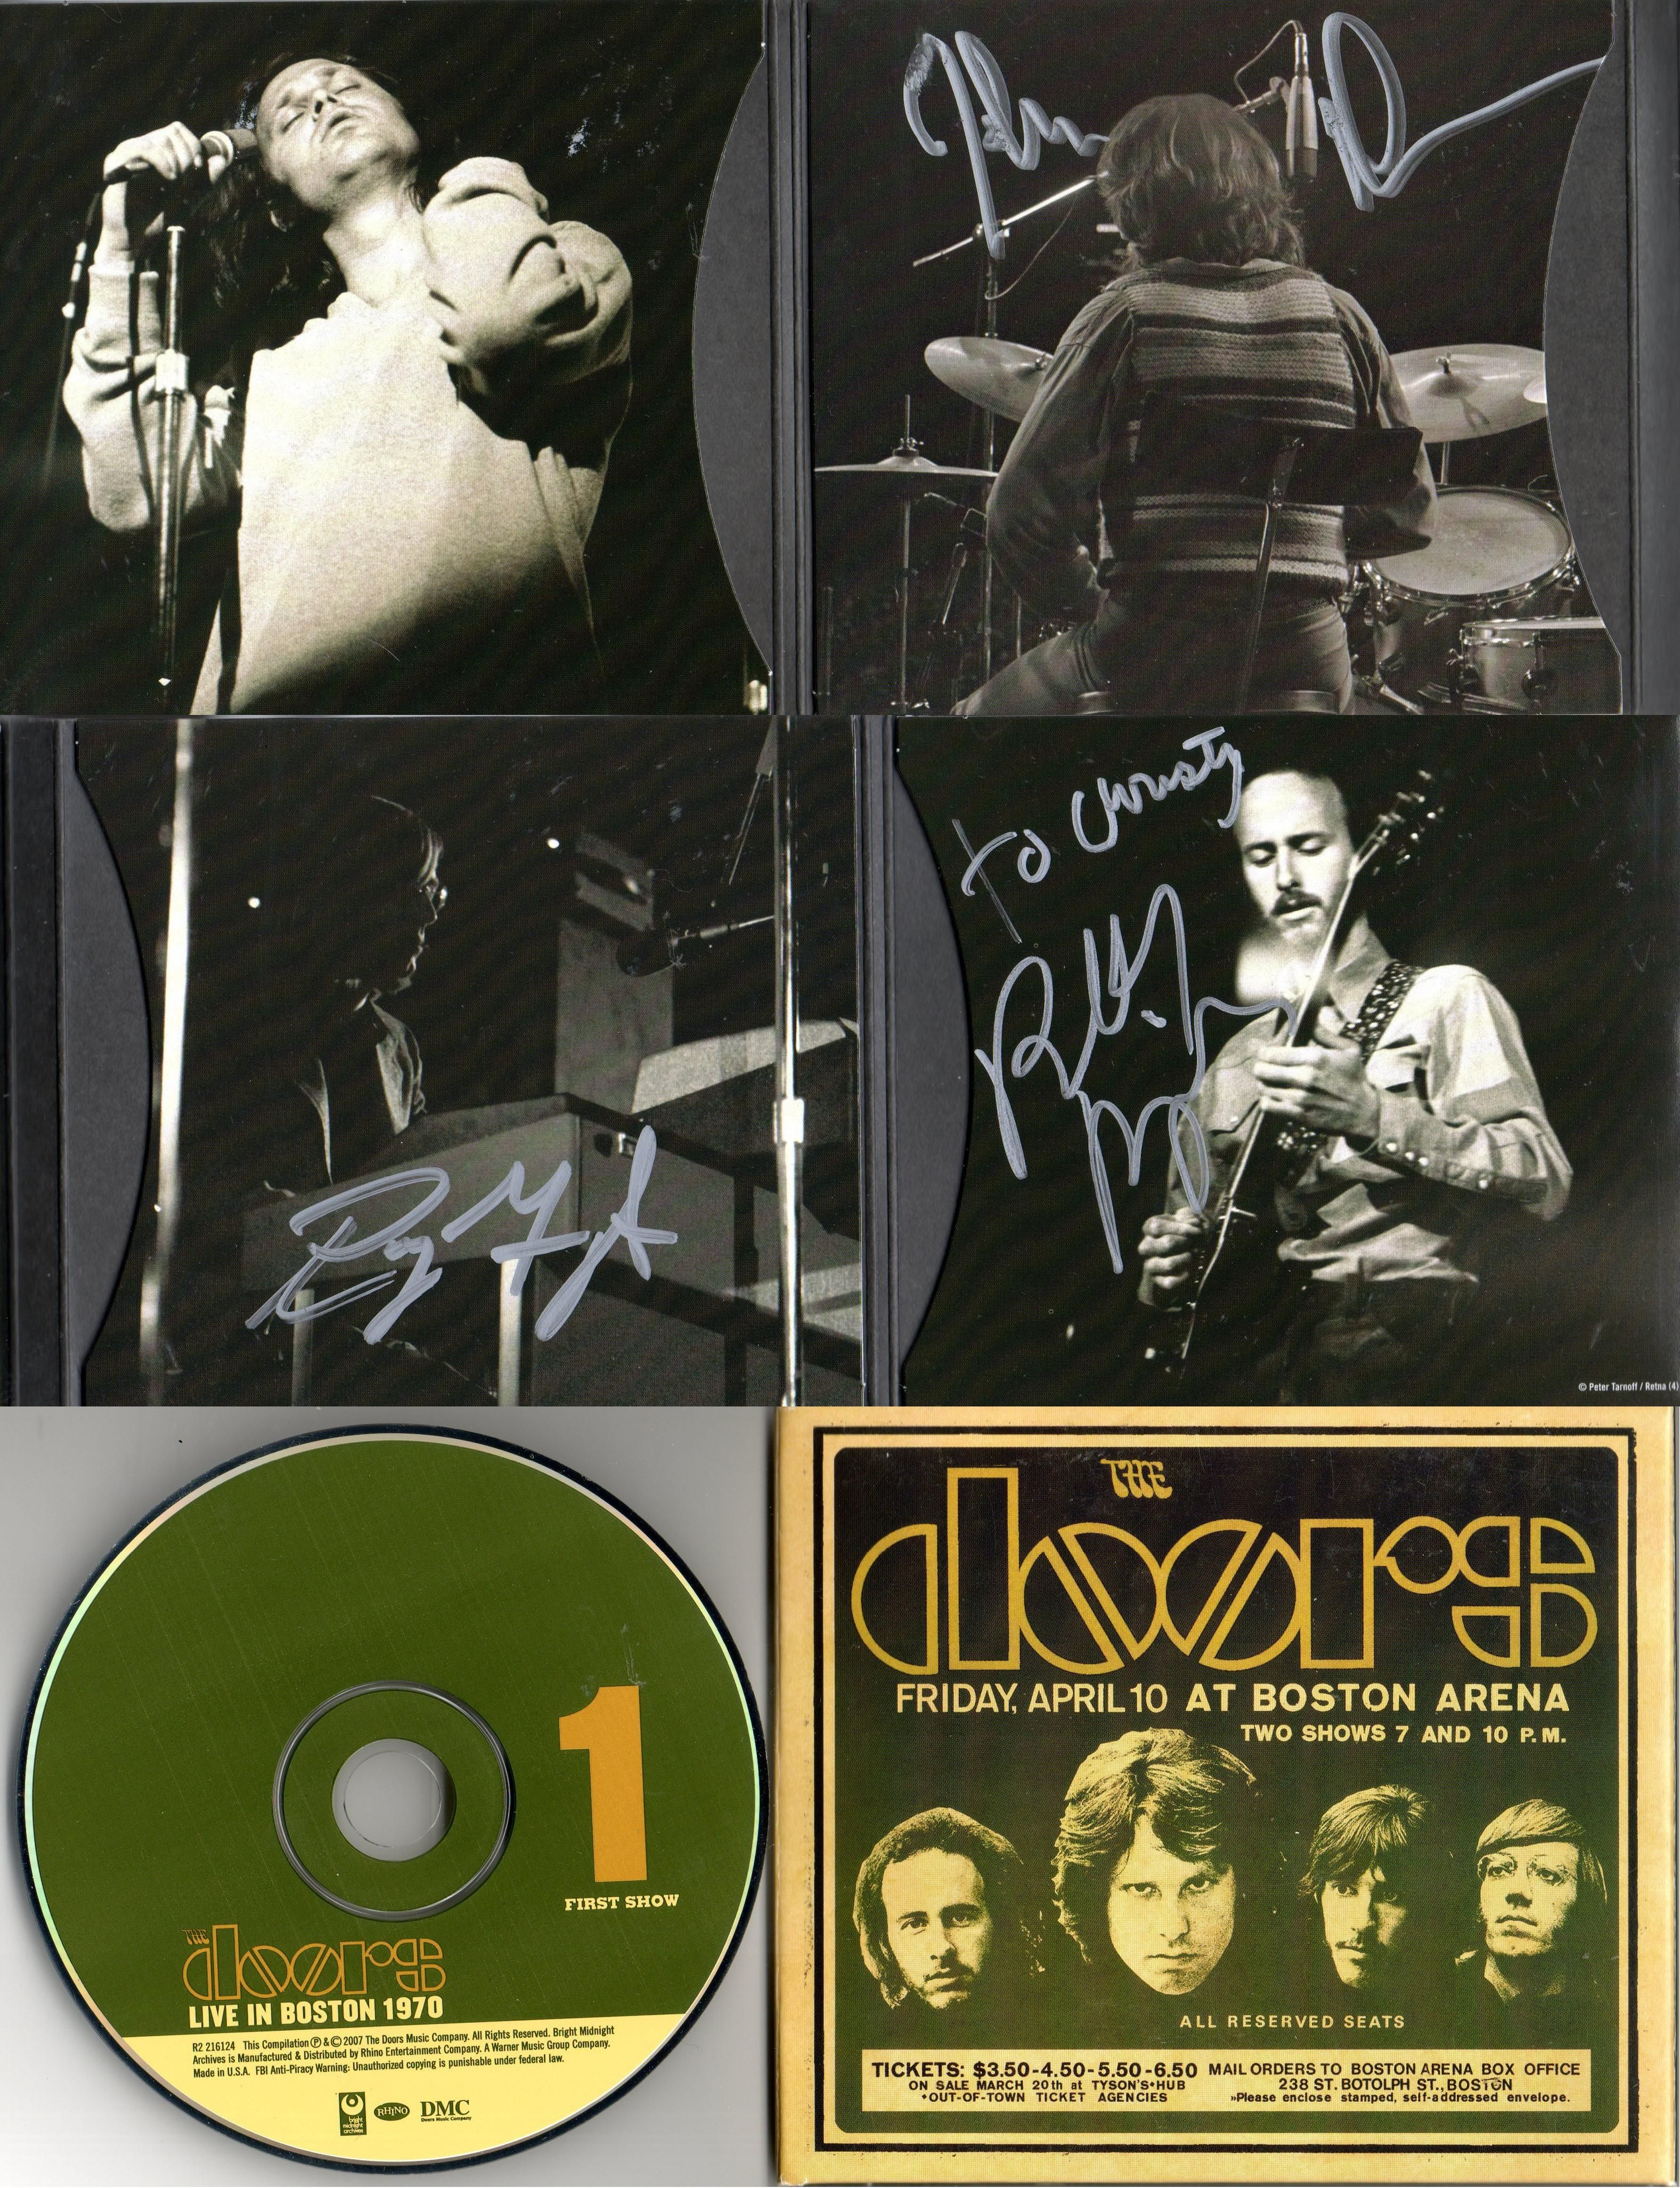 John Densmore Ray Manzarek and Robby Krieger of the Doors. Autographs on the 3 disc release  Live in Boston  sc 1 st  Pinterest & John Densmore Ray Manzarek and Robby Krieger of the Doors ... pezcame.com